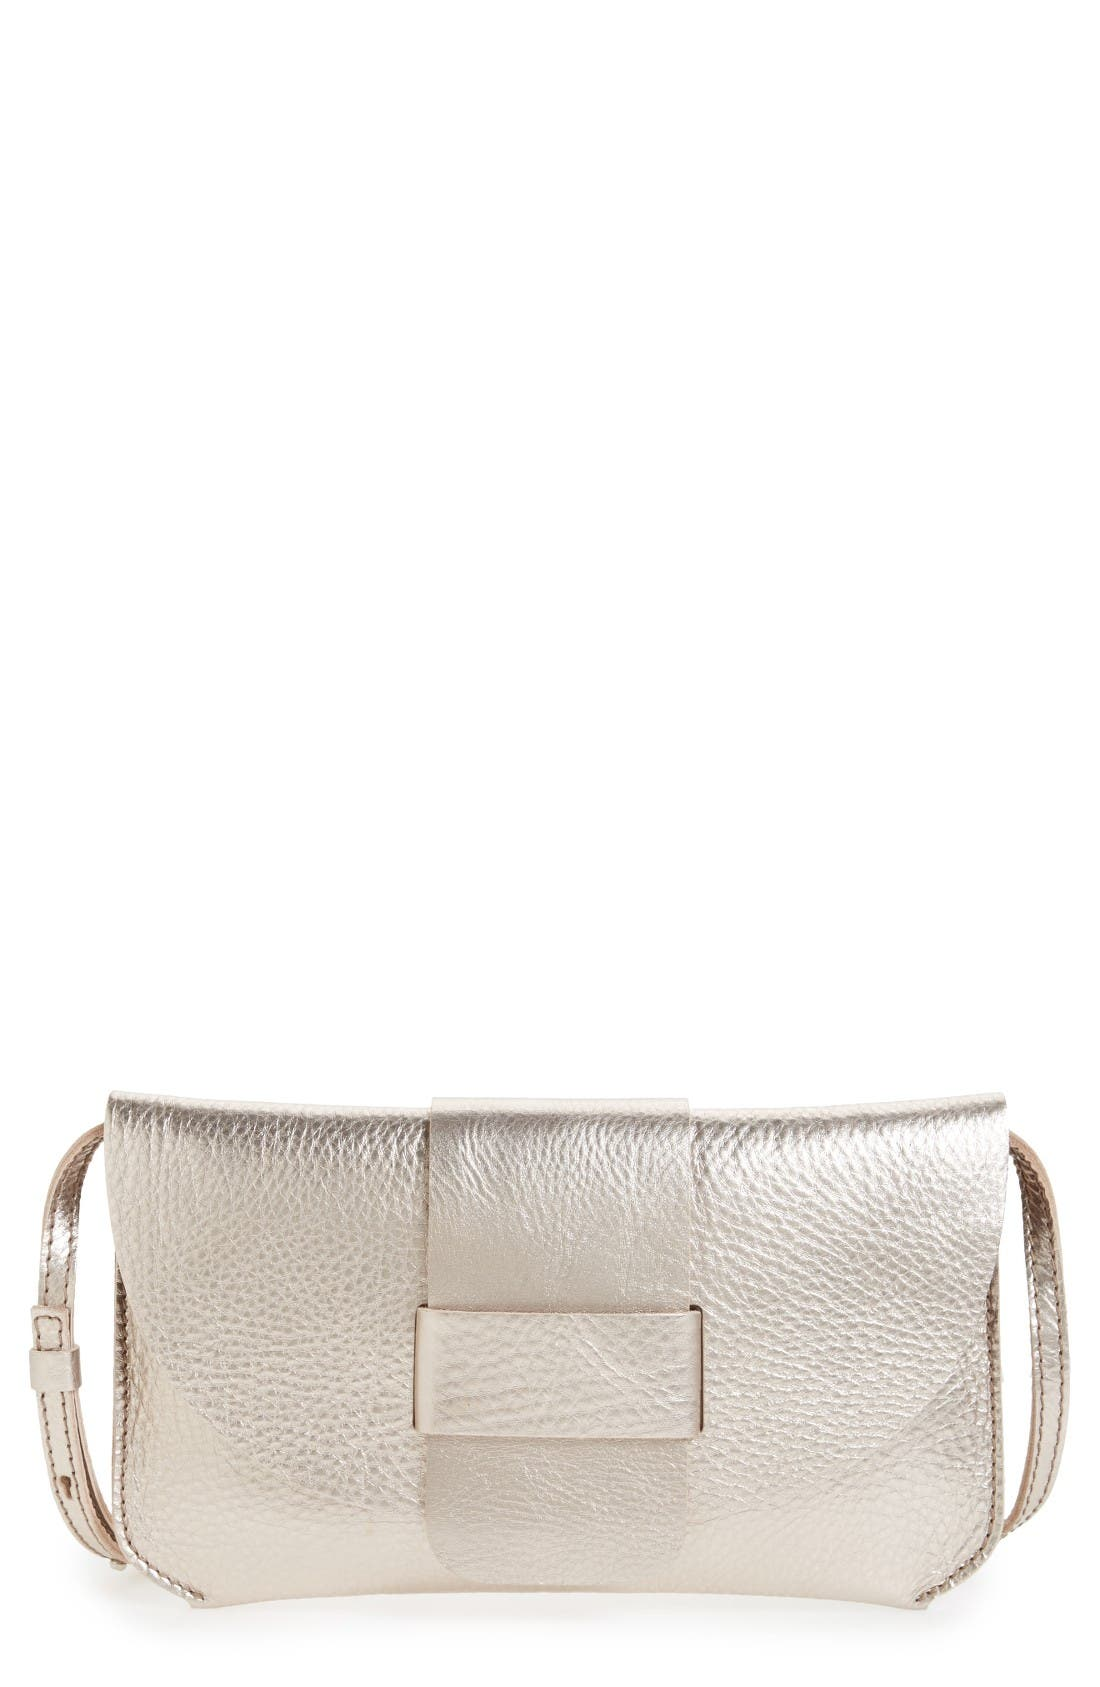 Pedro Garcia Leather Flap Clutch